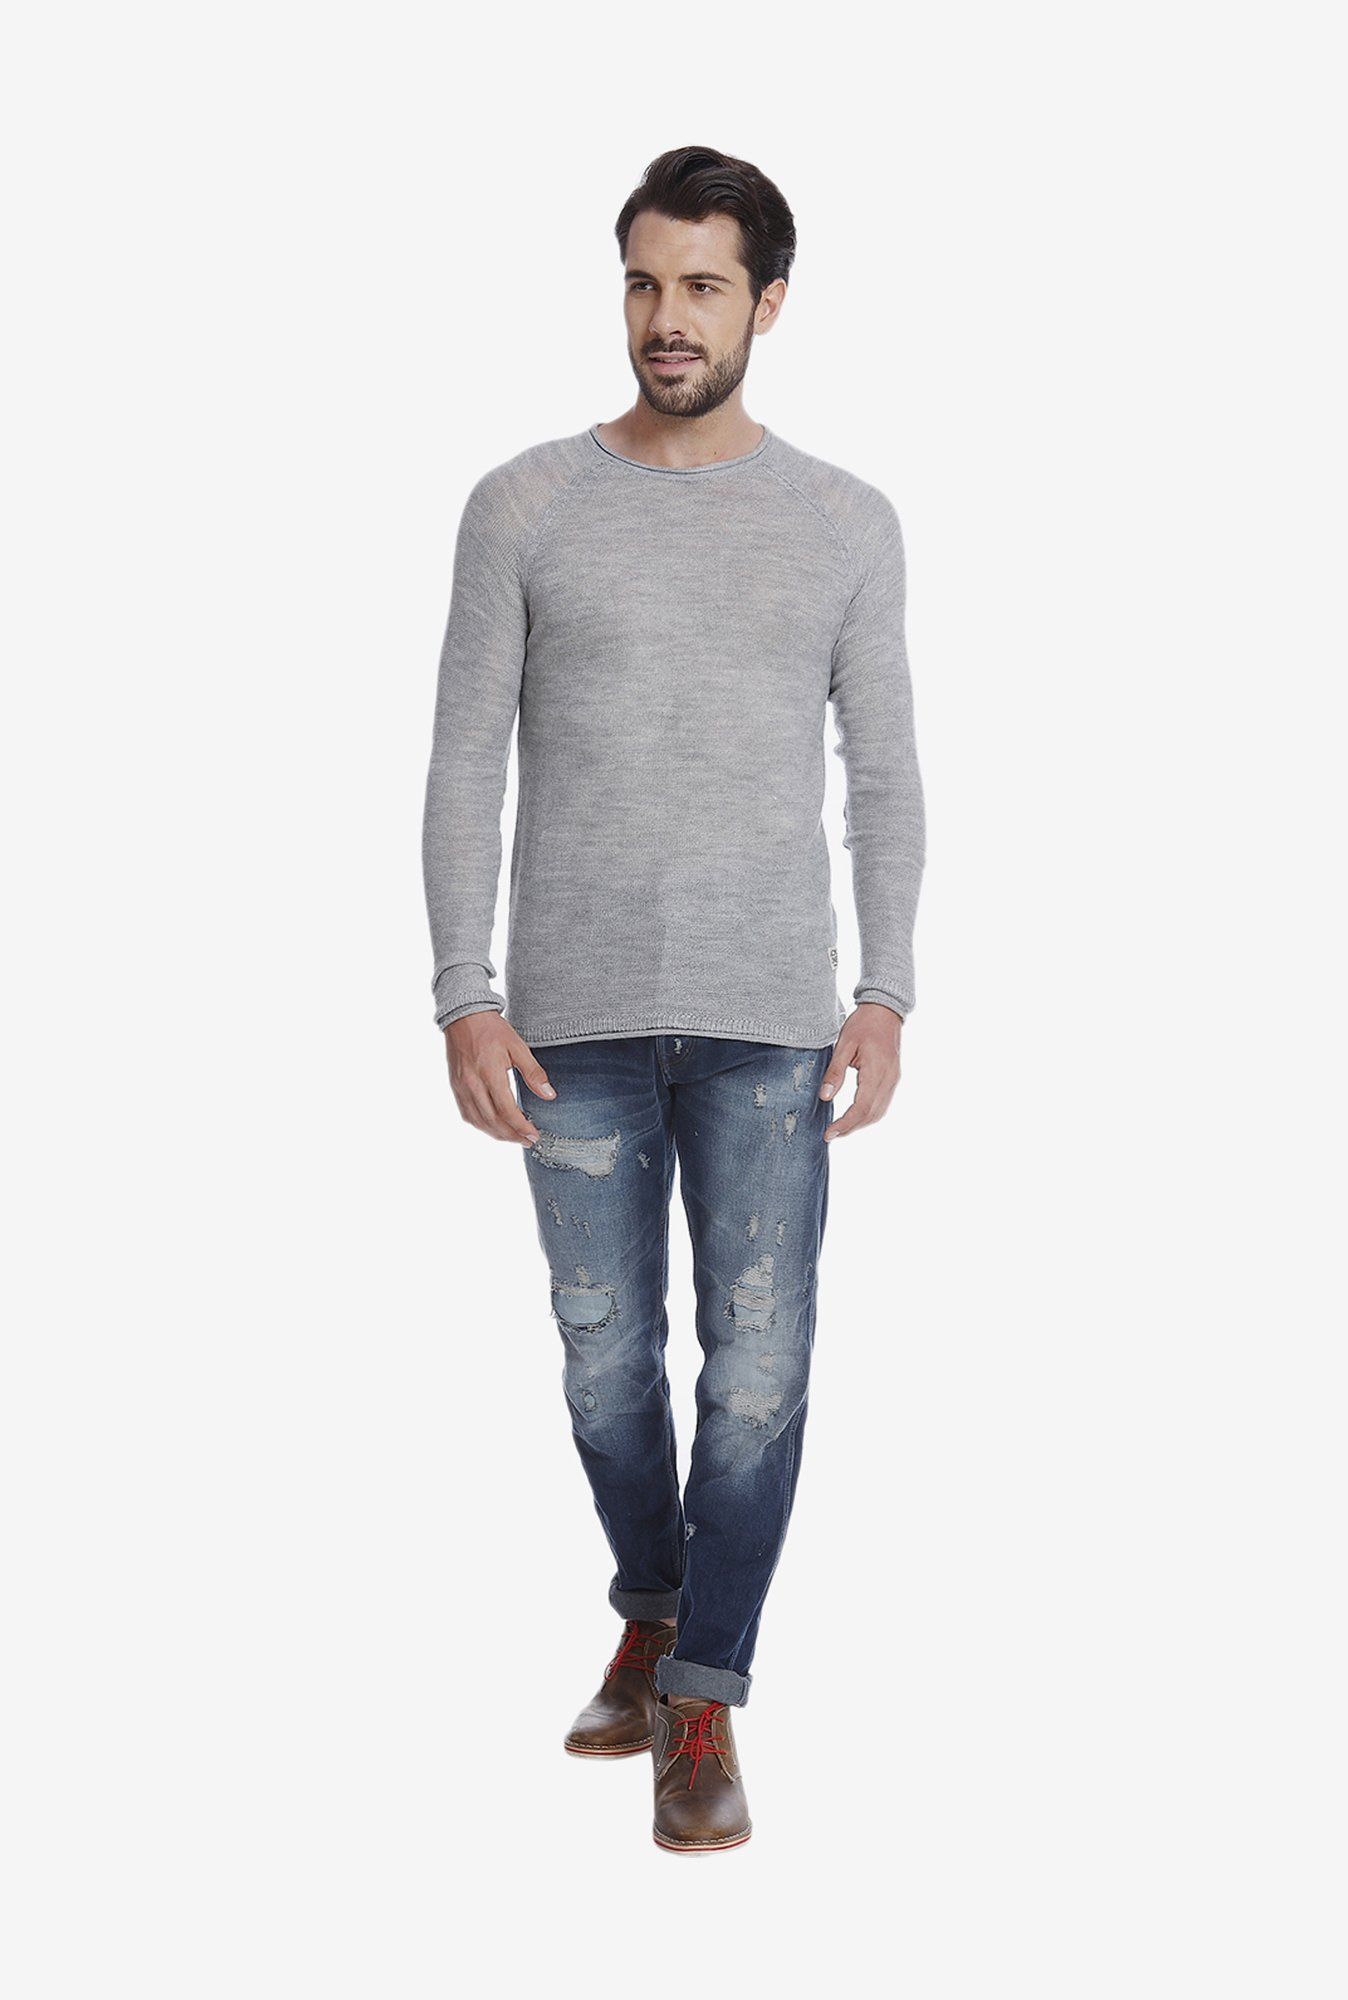 Jack & Jones Grey T Shirt